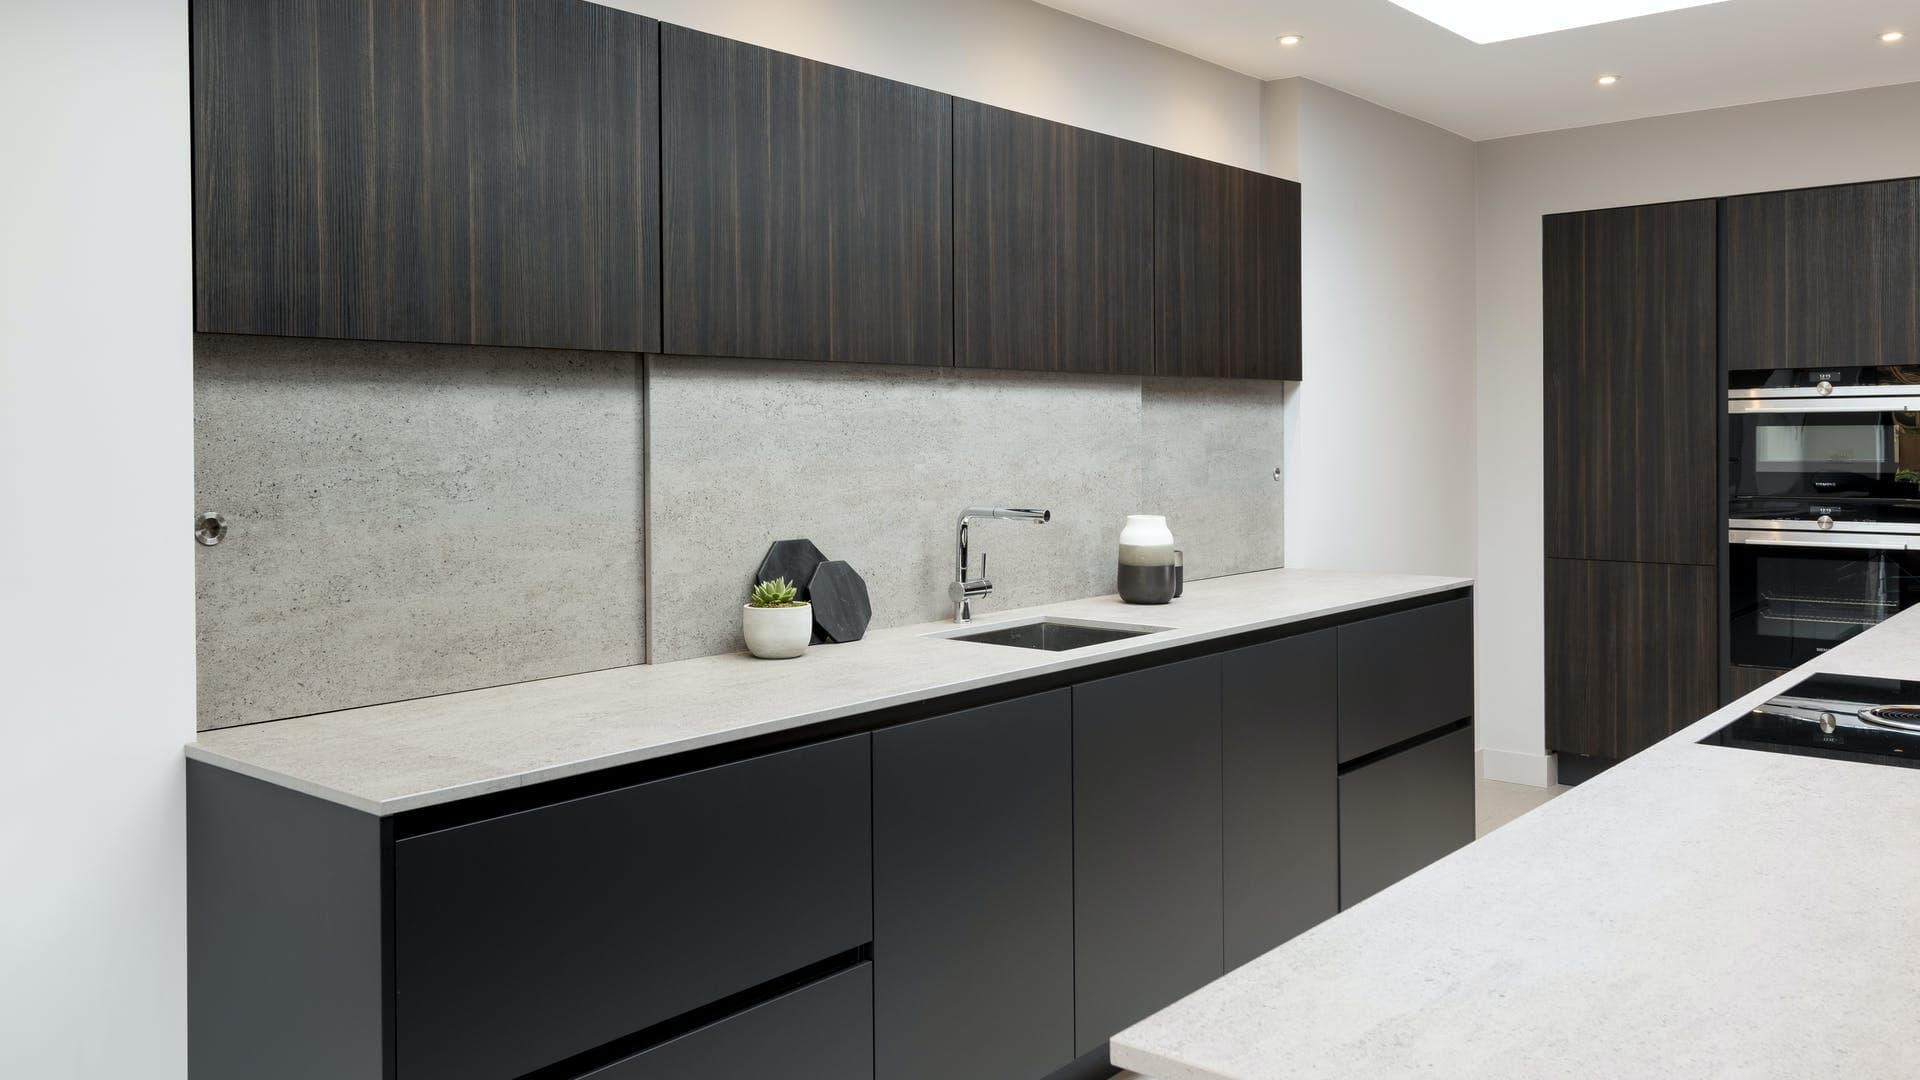 sample installation for dekton keon countertop material used for bath counters on german cabinetry for baths designe by eggersmann for the parklane luxury condos in houston